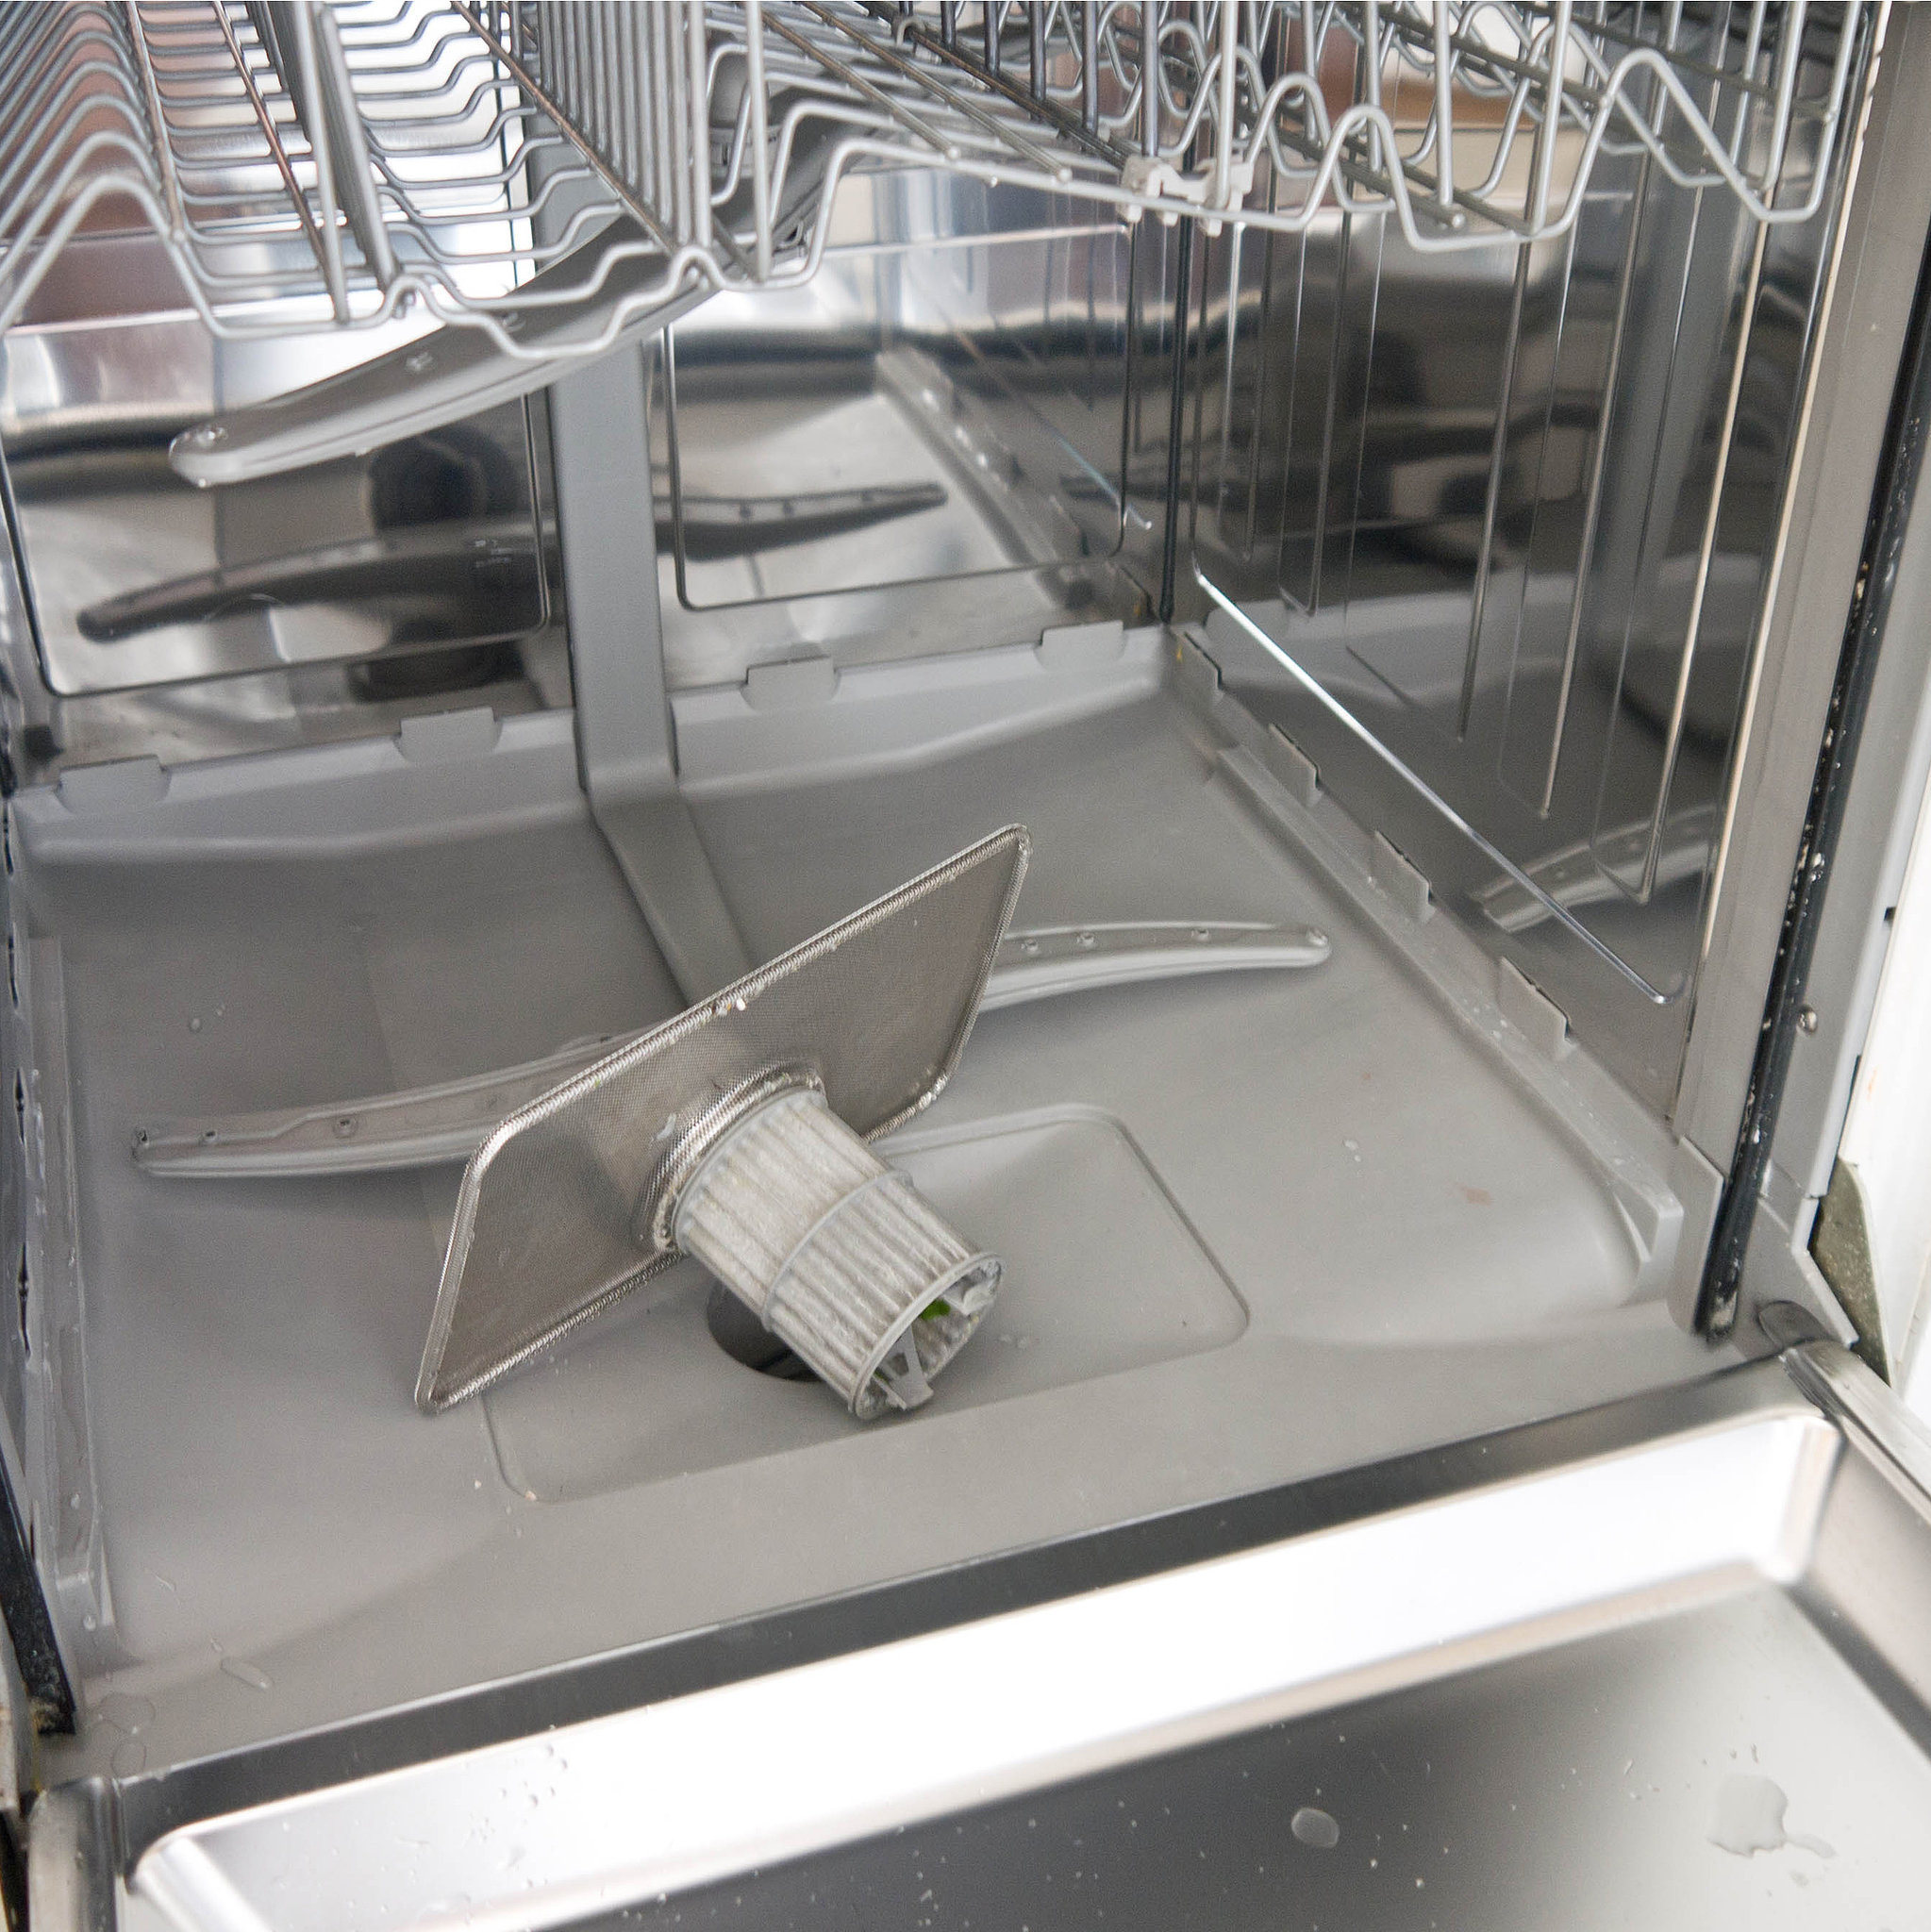 How To Clean Your Dishwasher Popsugar Smart Living Uk